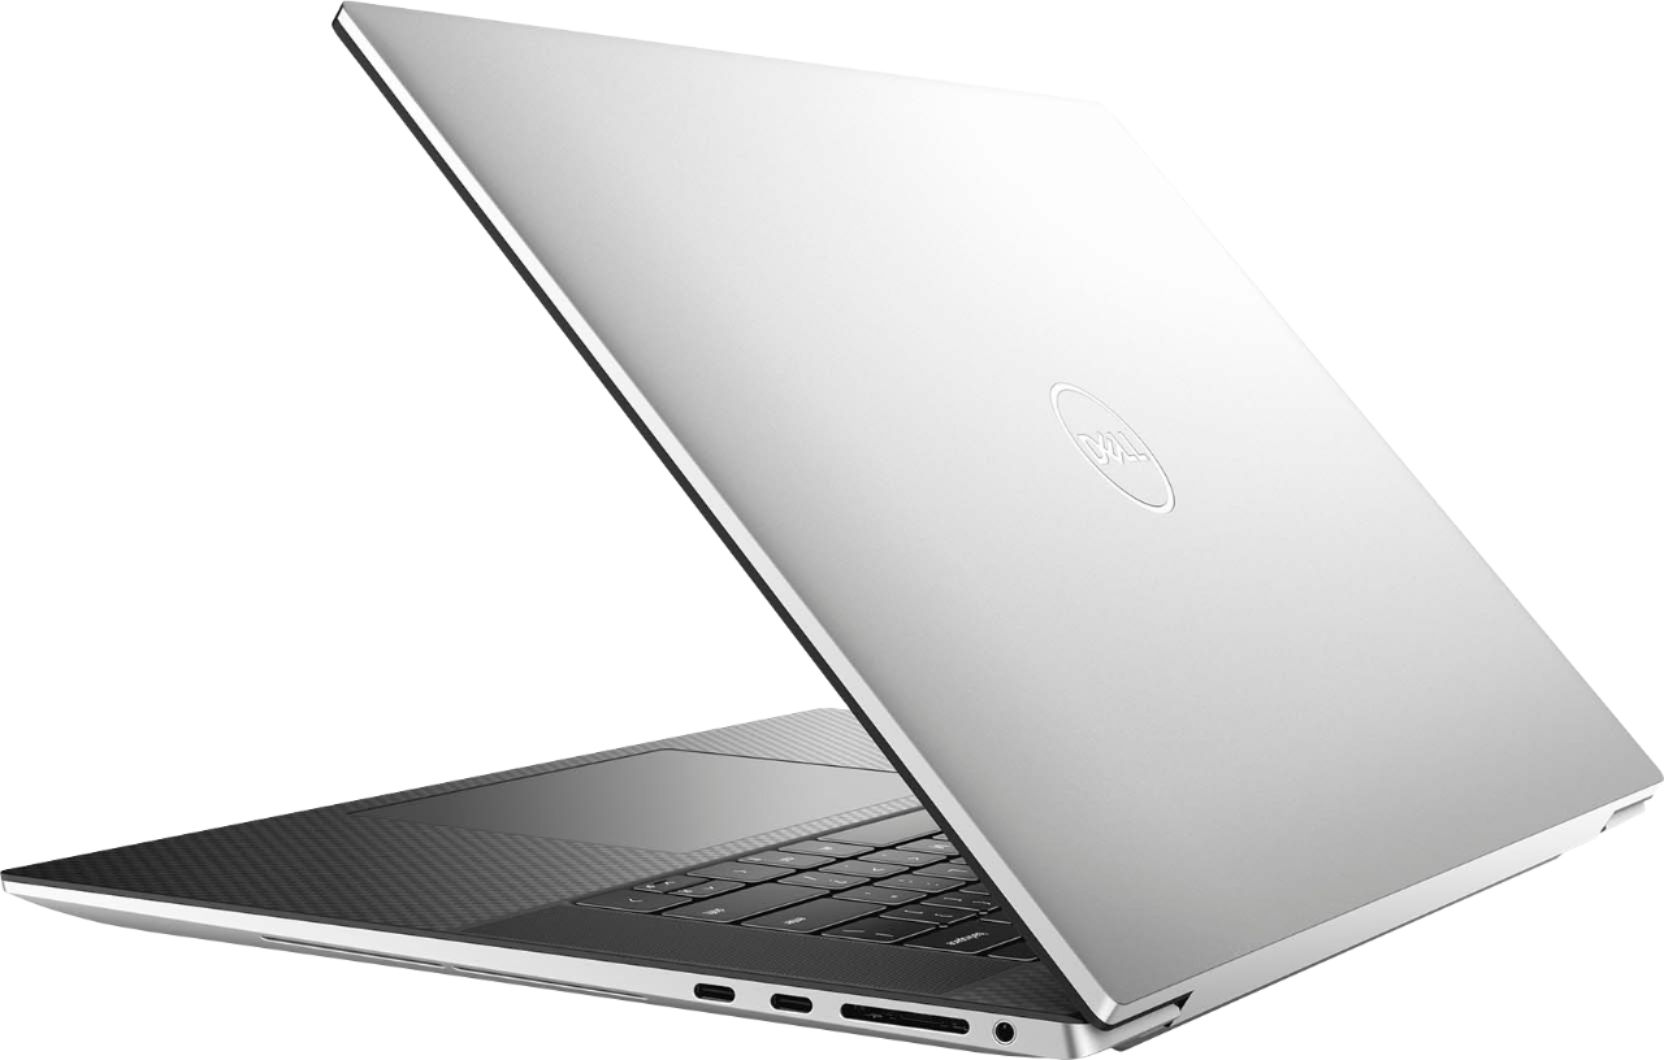 """Alt View Zoom 1. Dell - XPS 17"""" UHD+ Touch Laptop - Intel Core i7 - 16GB Memory - 1TB SSD - NVIDIA GeForce RTX 2060 - Silver cover, black interior."""